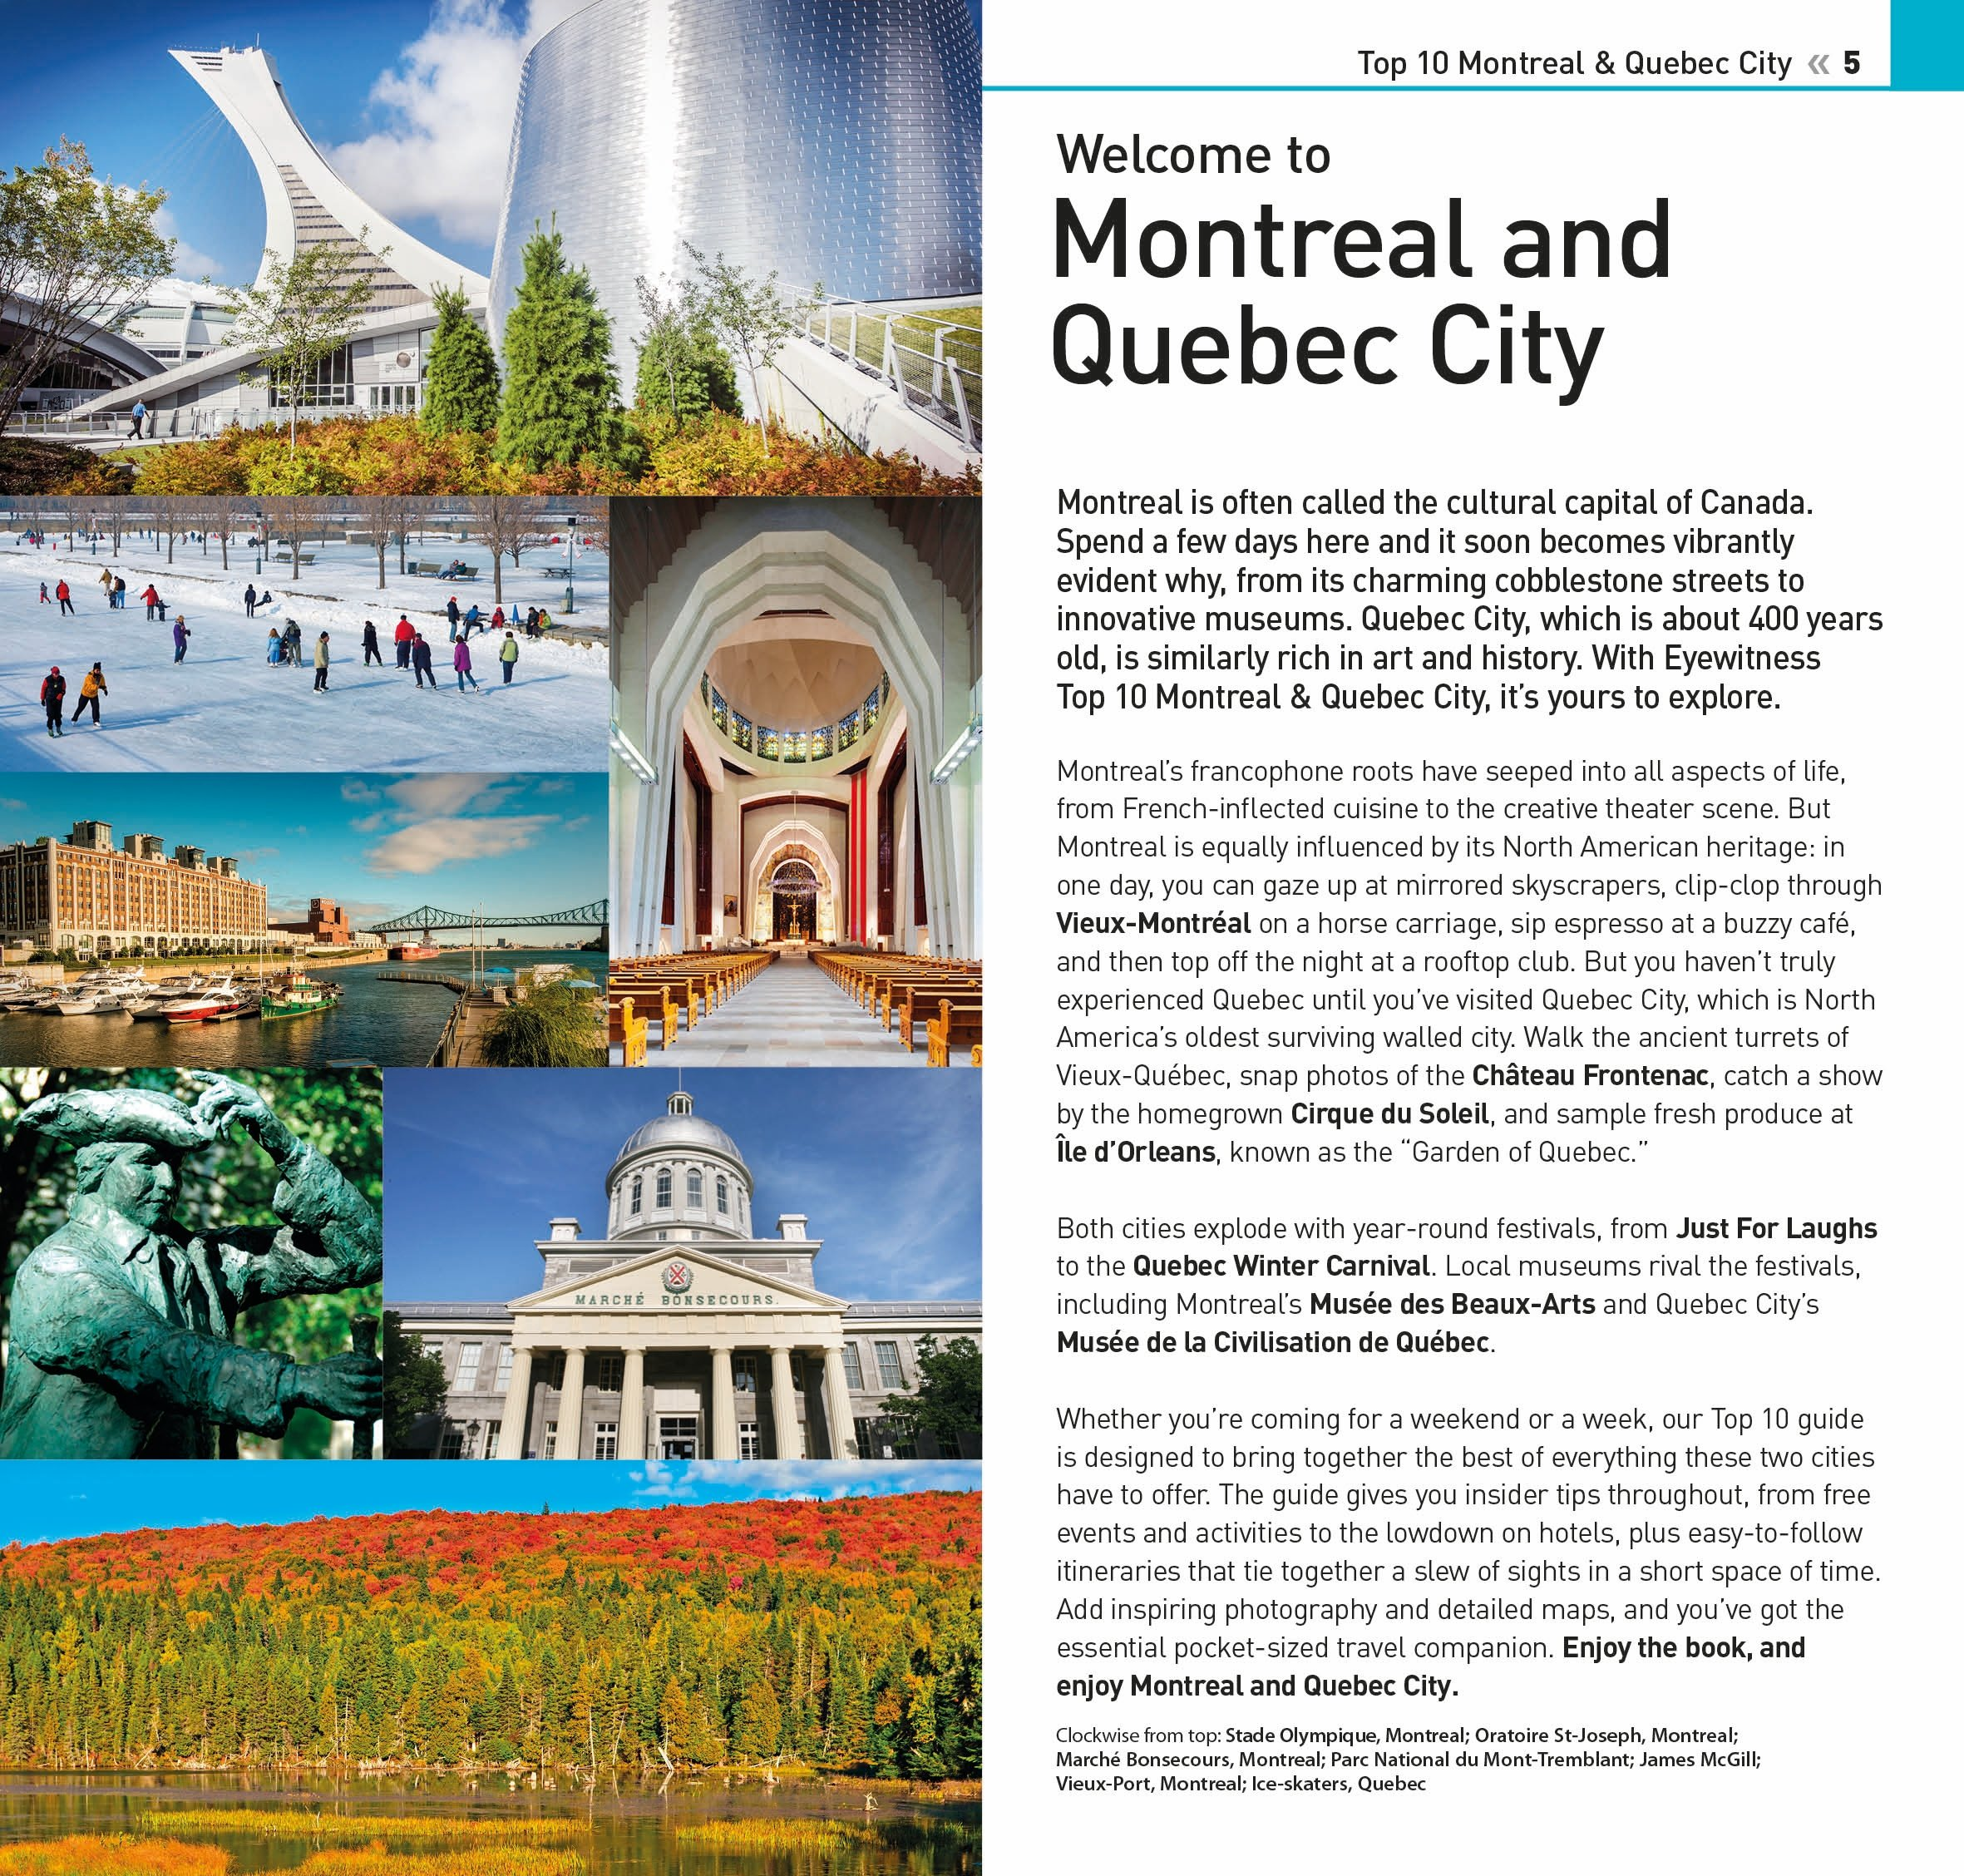 Top Montreal Quebec City Eyewitness Top Travel Guide DK - 10 ideas for winter fun in quebec city